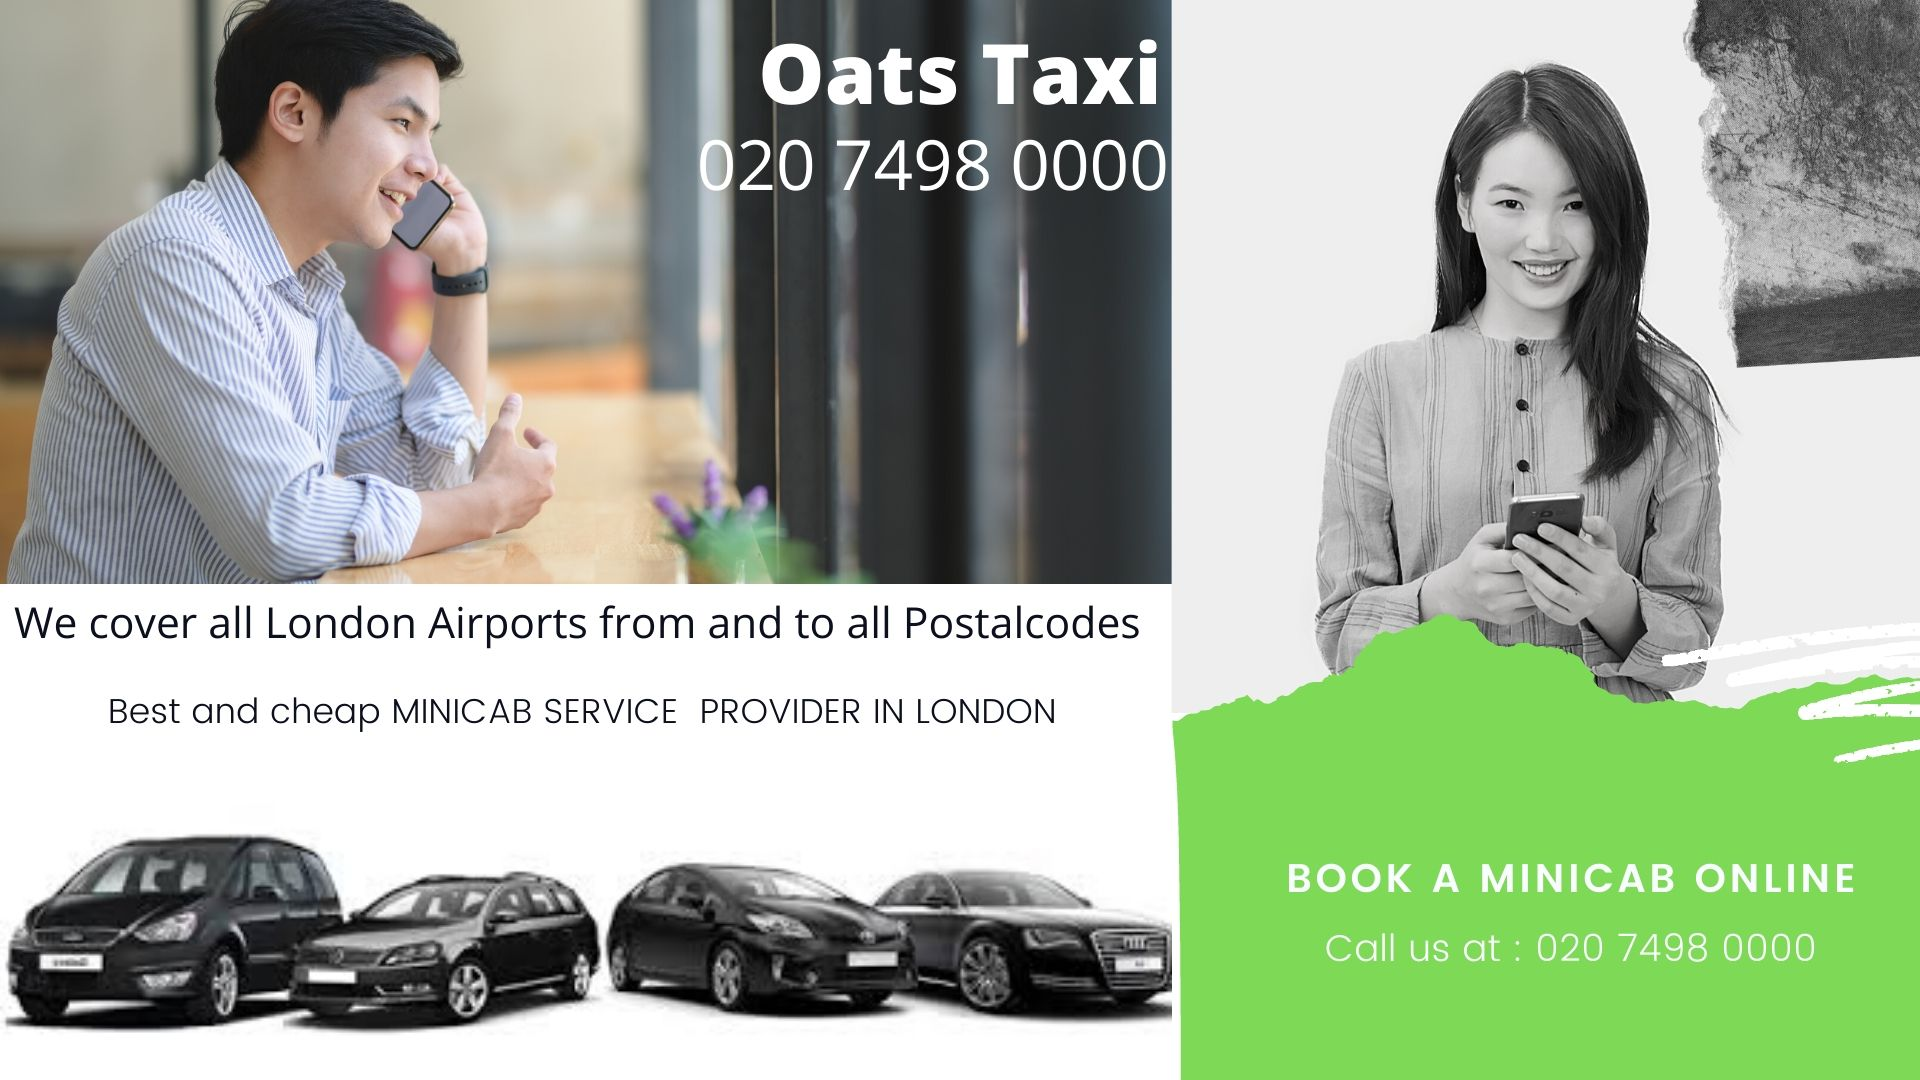 Nearest Minicab Office in Chelsea | Nearest Minicab Office in Gatwick Airport | Call now : 02074980000